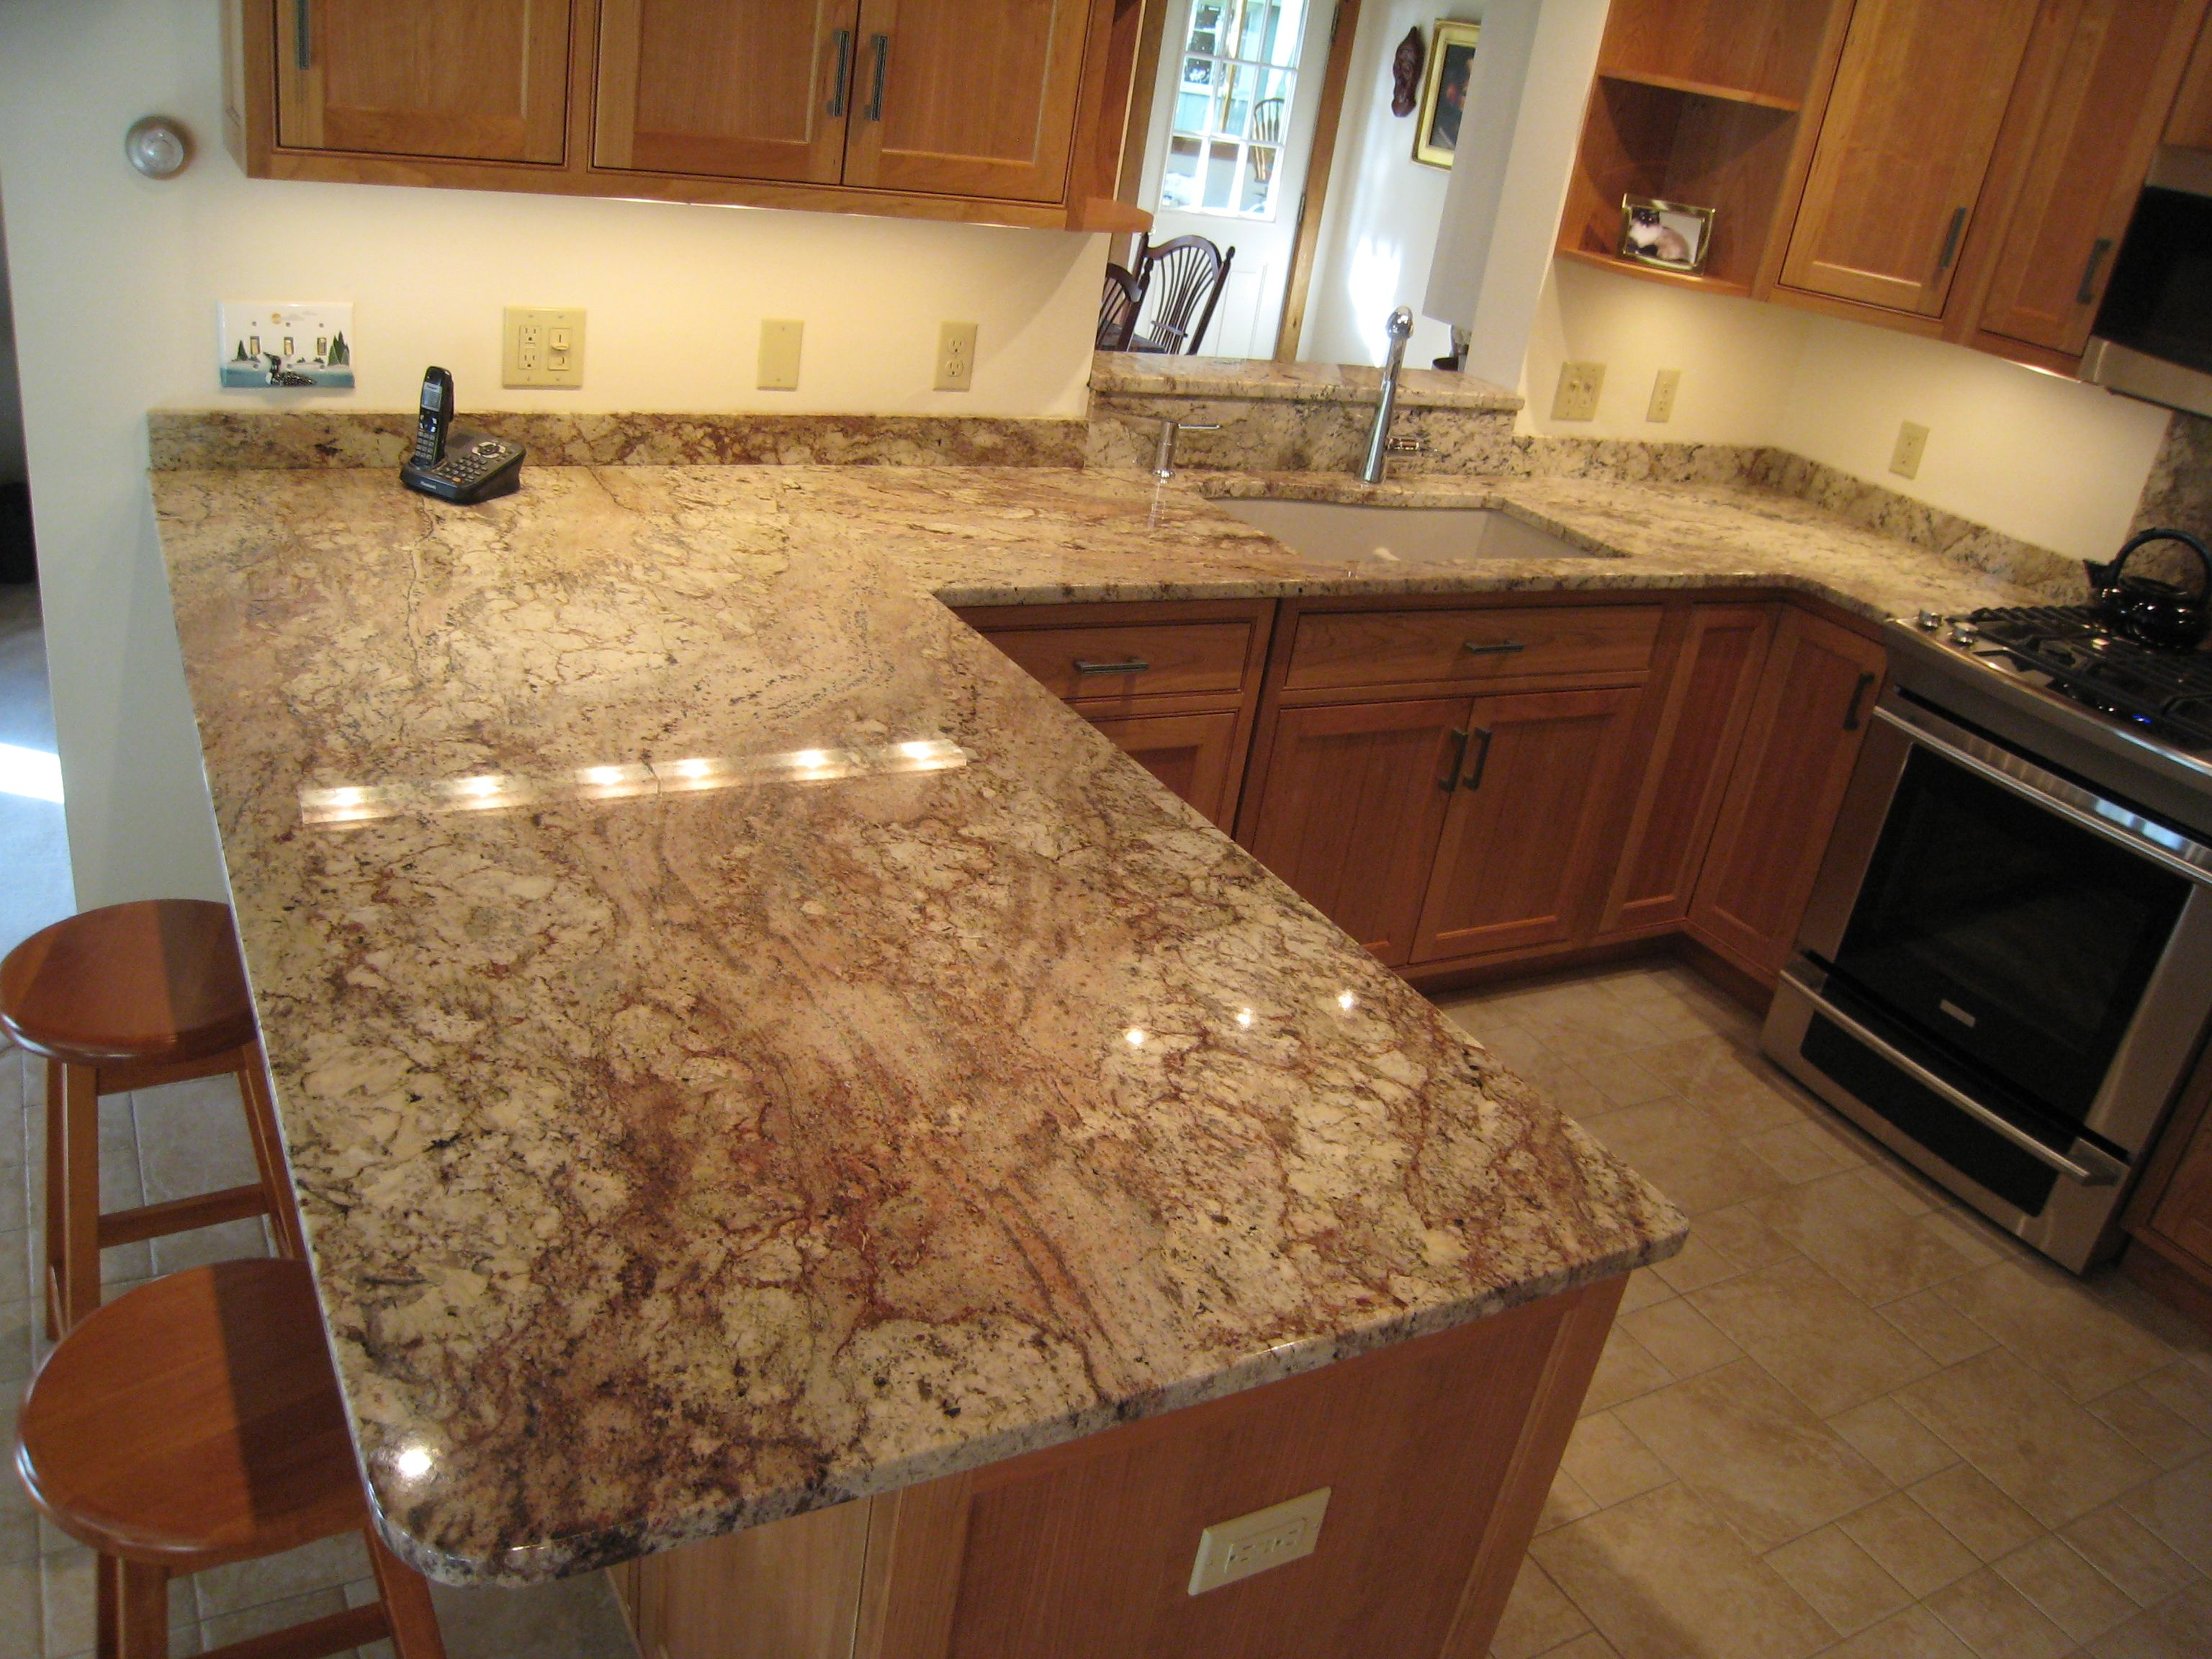 Colors Of Granite Kitchen Countertops Like This Color Granite Maybe With Wood Floors And White Cabinets